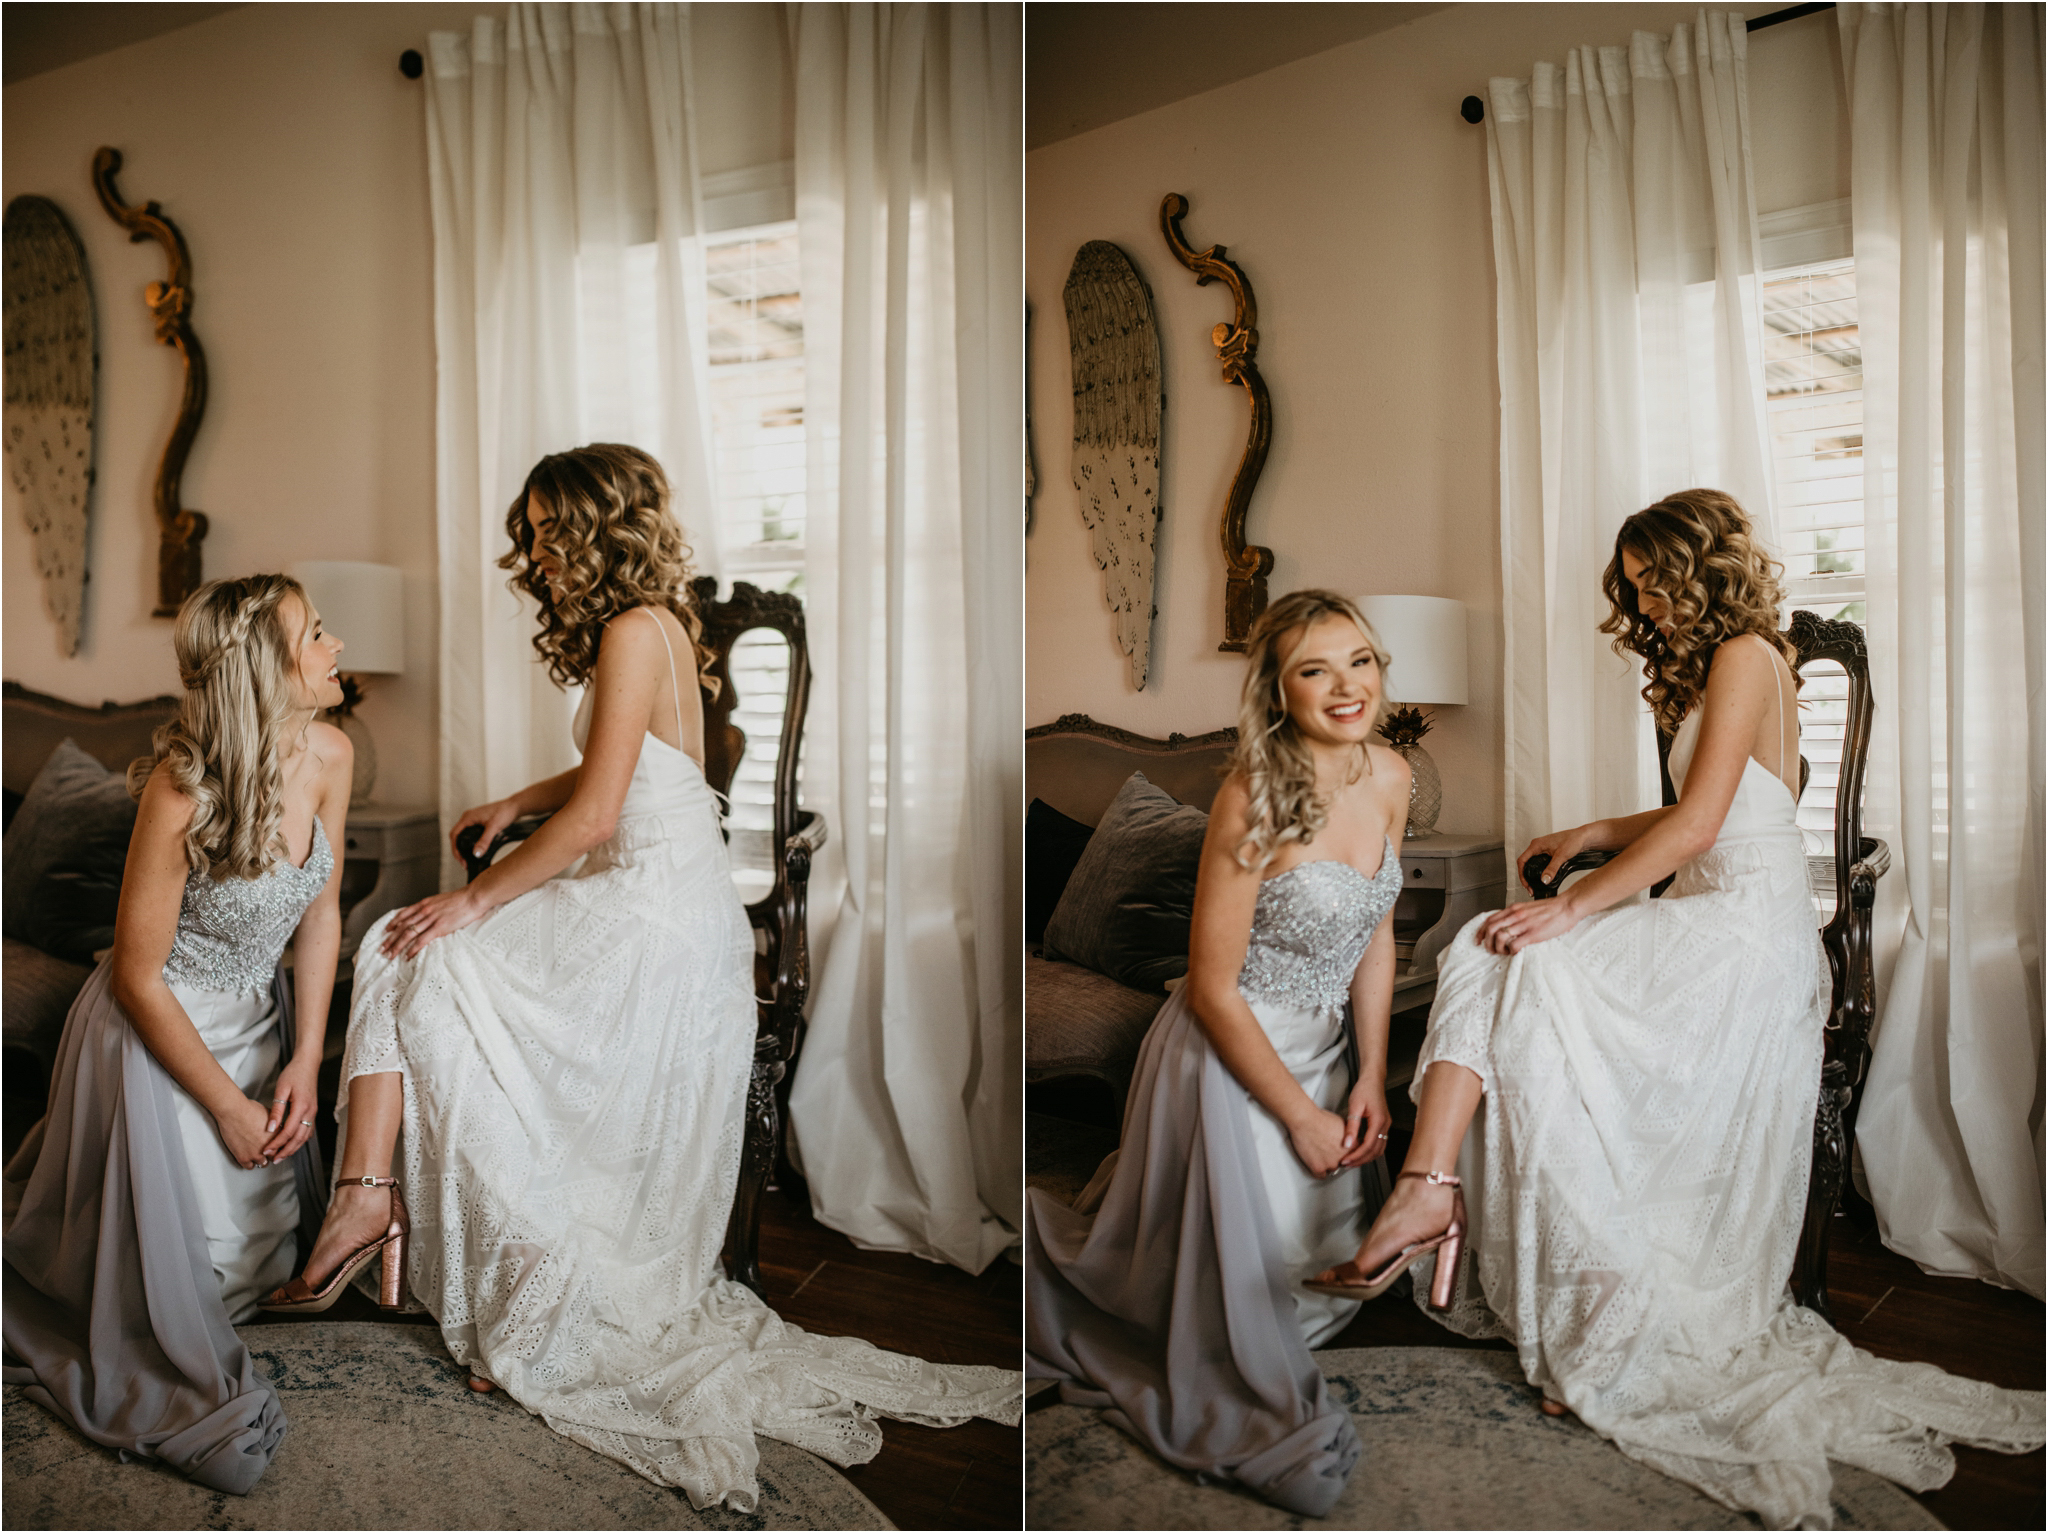 jillian-and-scott-pecan-springs-ranch-texas-and-washington-wedding-photographer-023.jpg